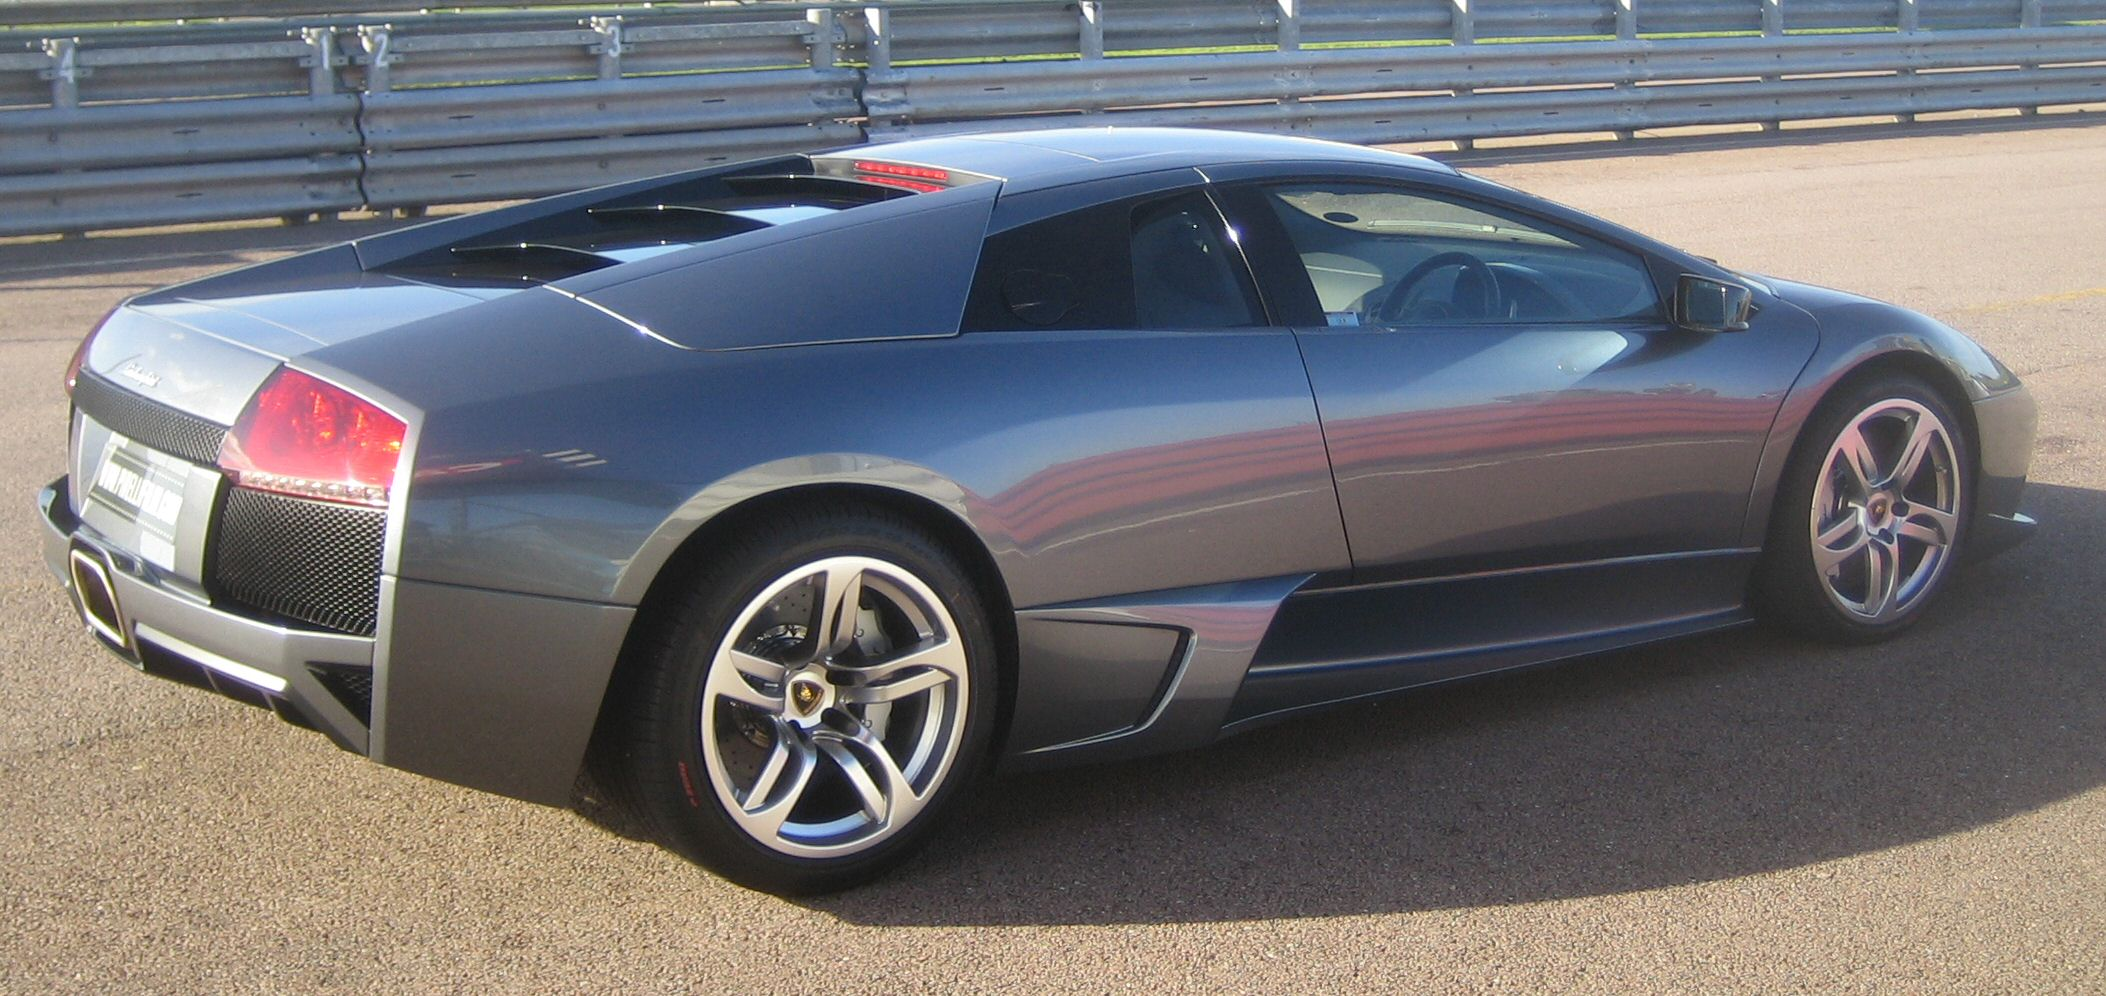 File Lamborghini Murcielago Lp640 2006 Rear 3 Quarter Jpg Wikimedia Commons